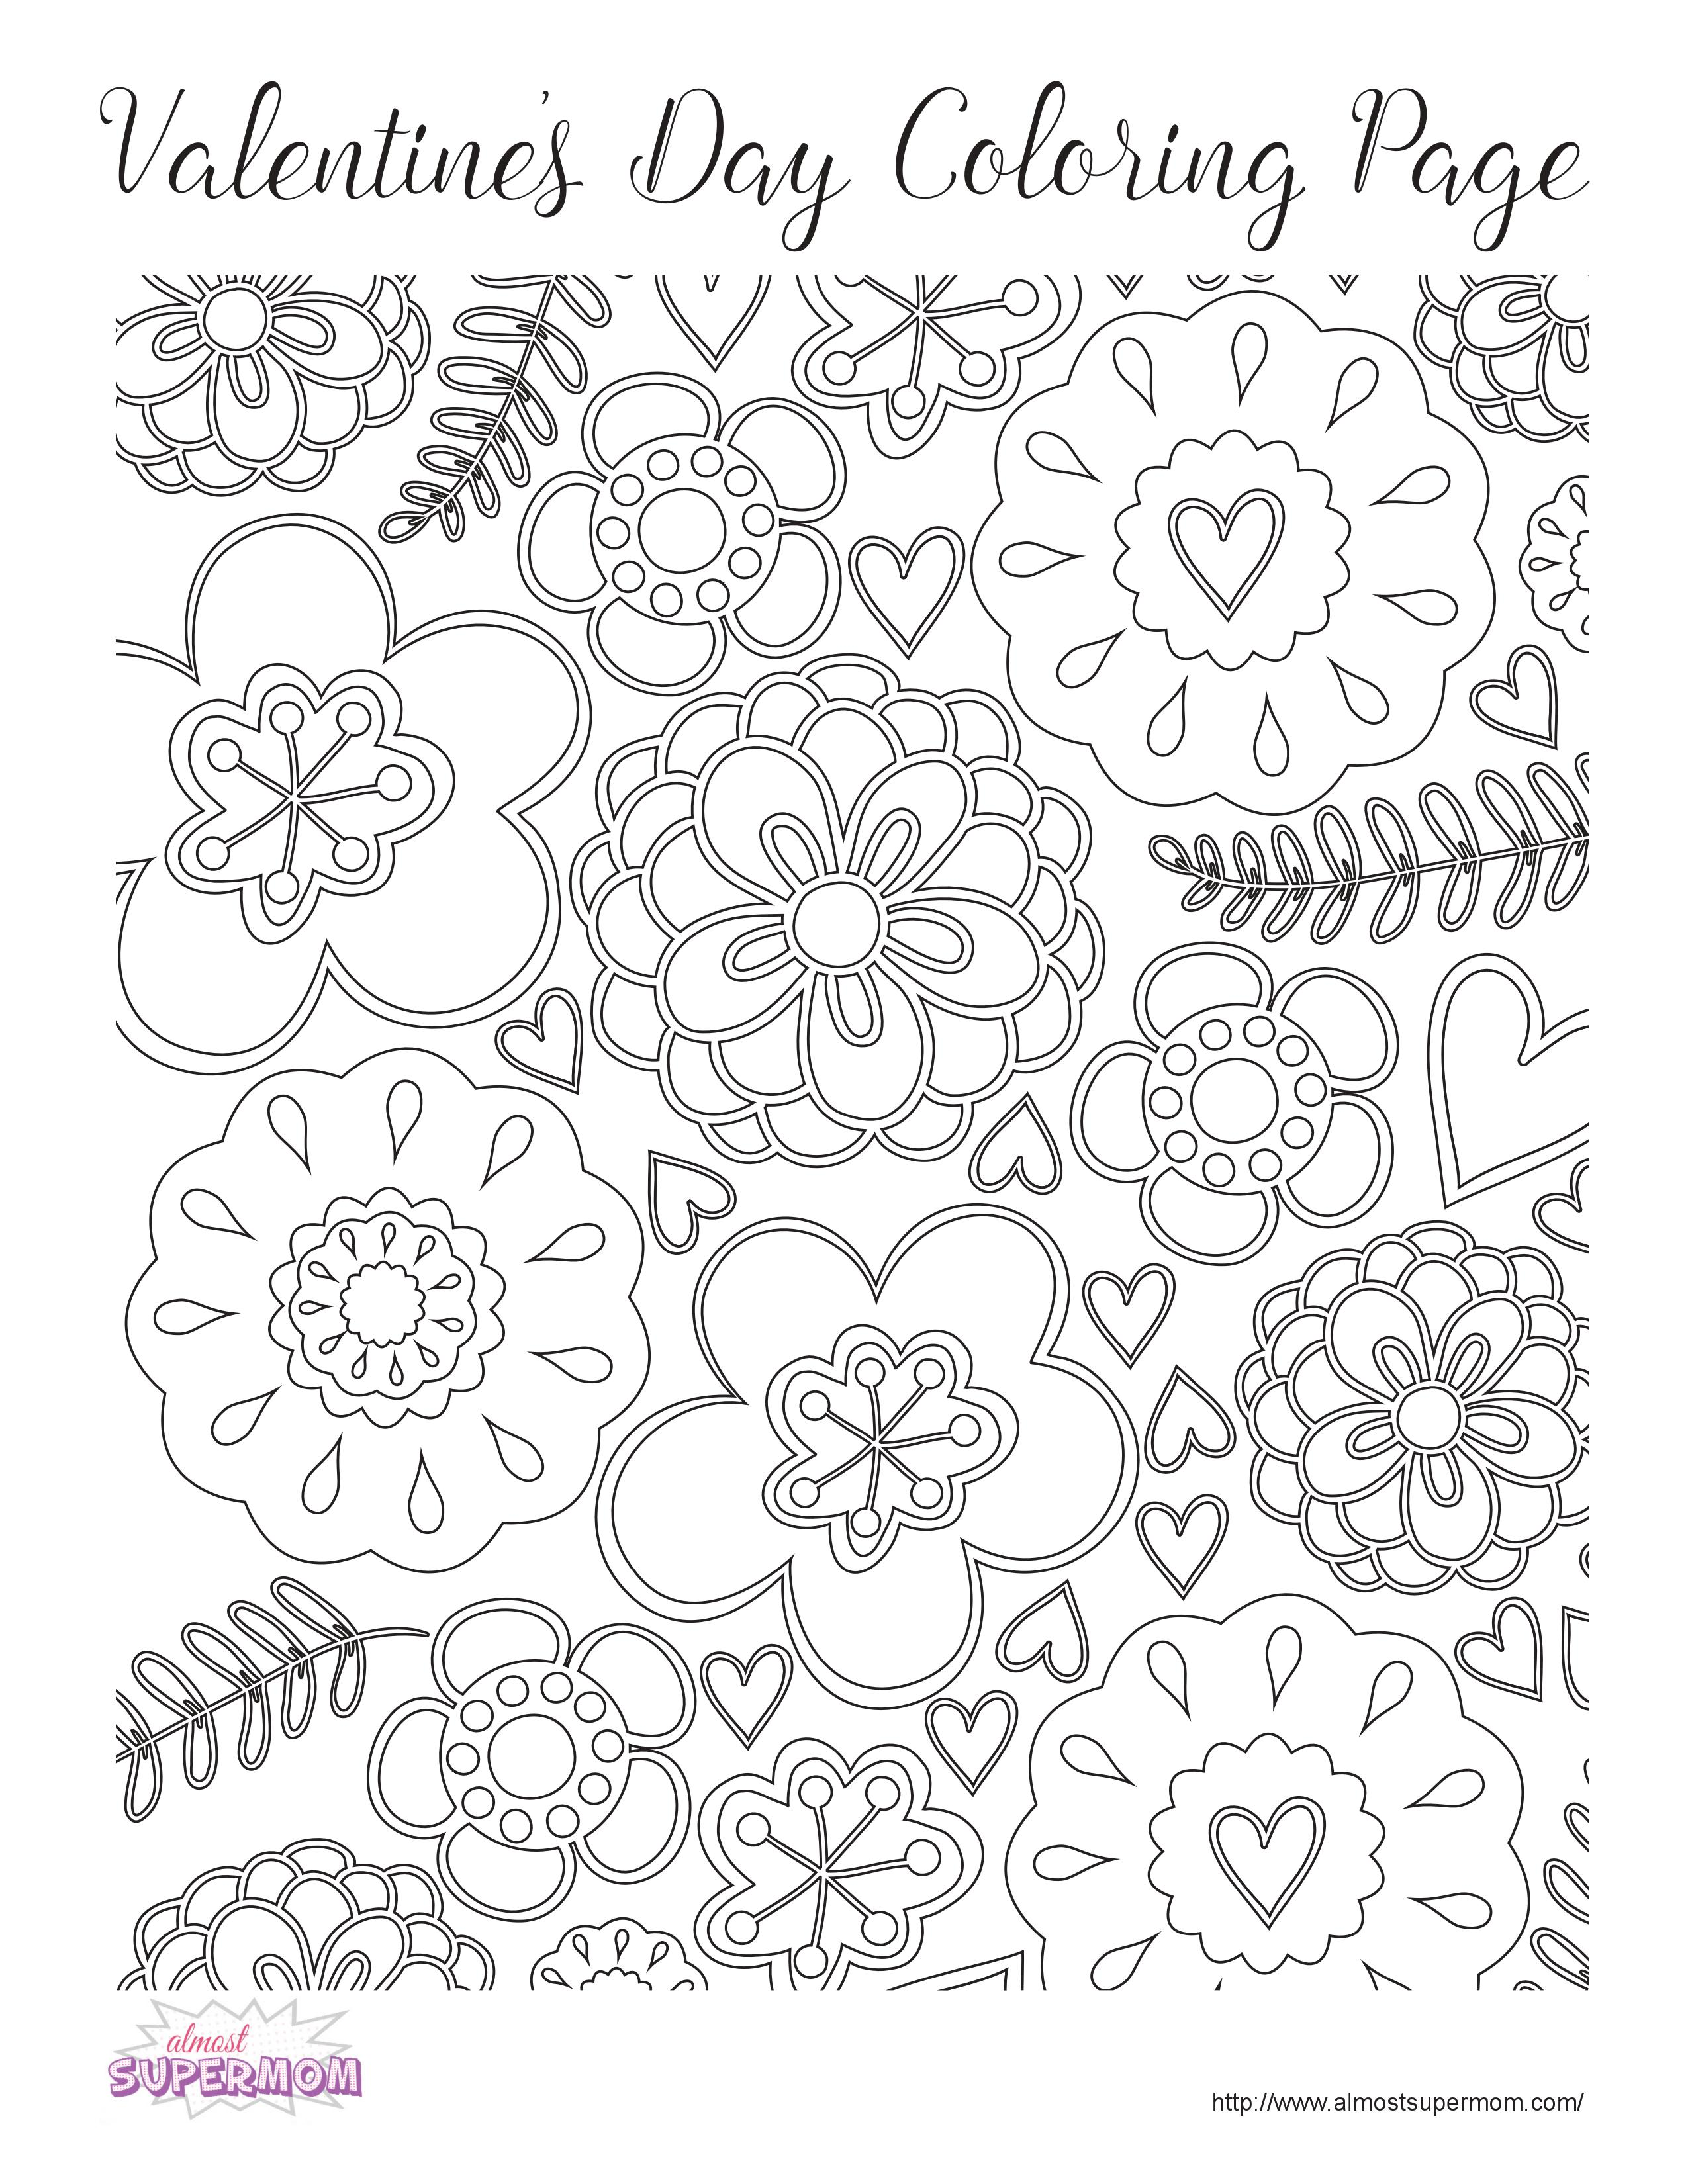 FREE Valentine\'s Day Coloring Pages for Grown Ups - Almost Supermom